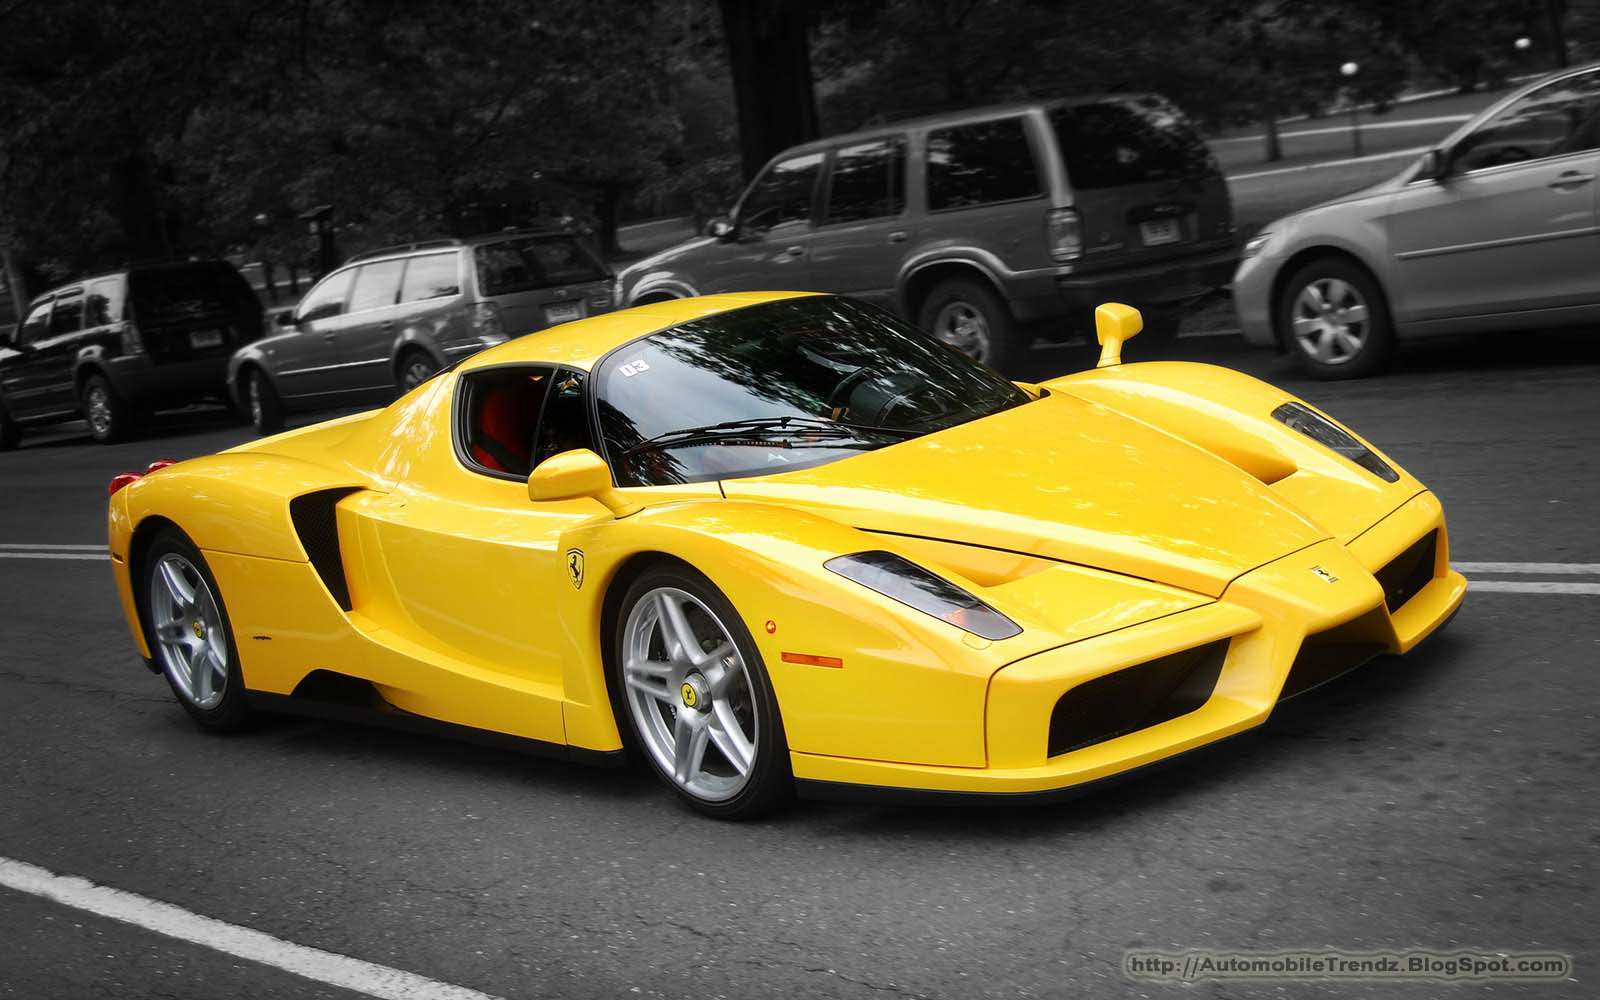 Automobile Trendz: Ferrari Enzo Wallpaper